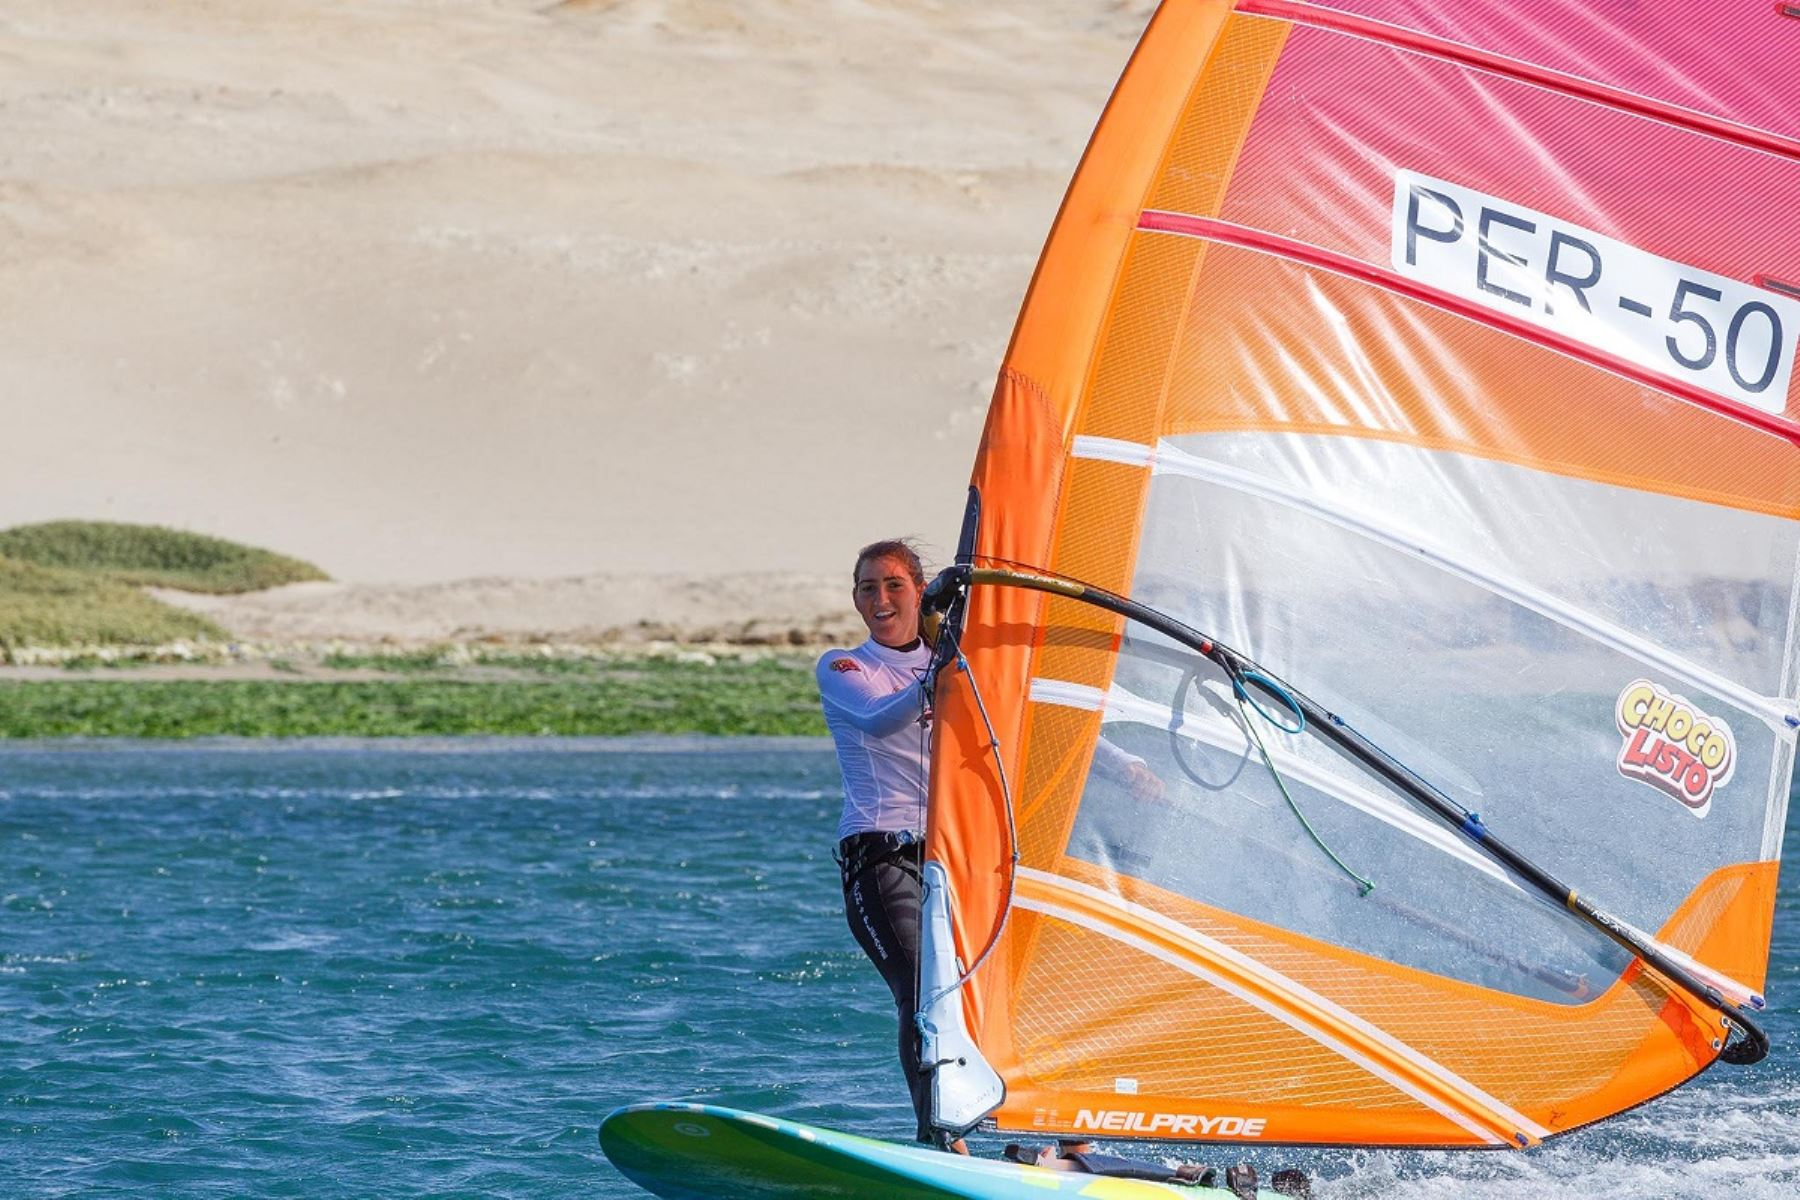 Lima 2019: Peru grabs bronze in women's windsurfing | News